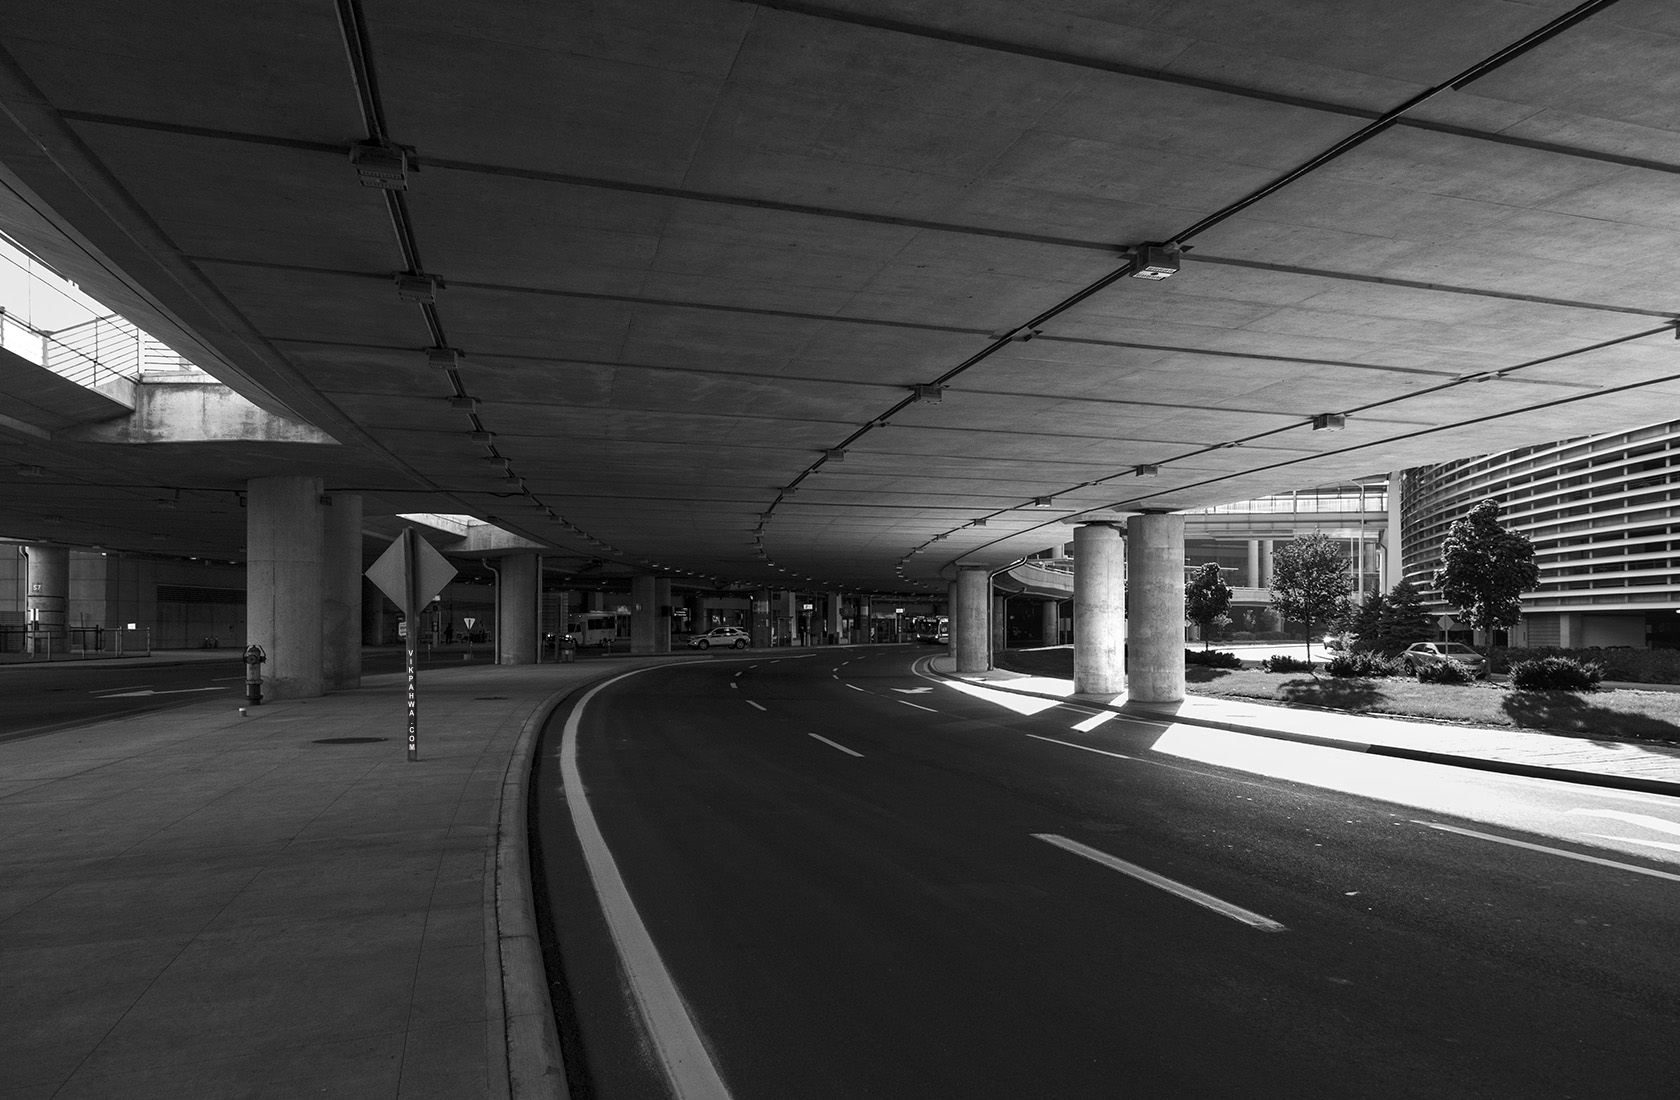 20161013. The broad, curving roadway at ground level leaving Tor